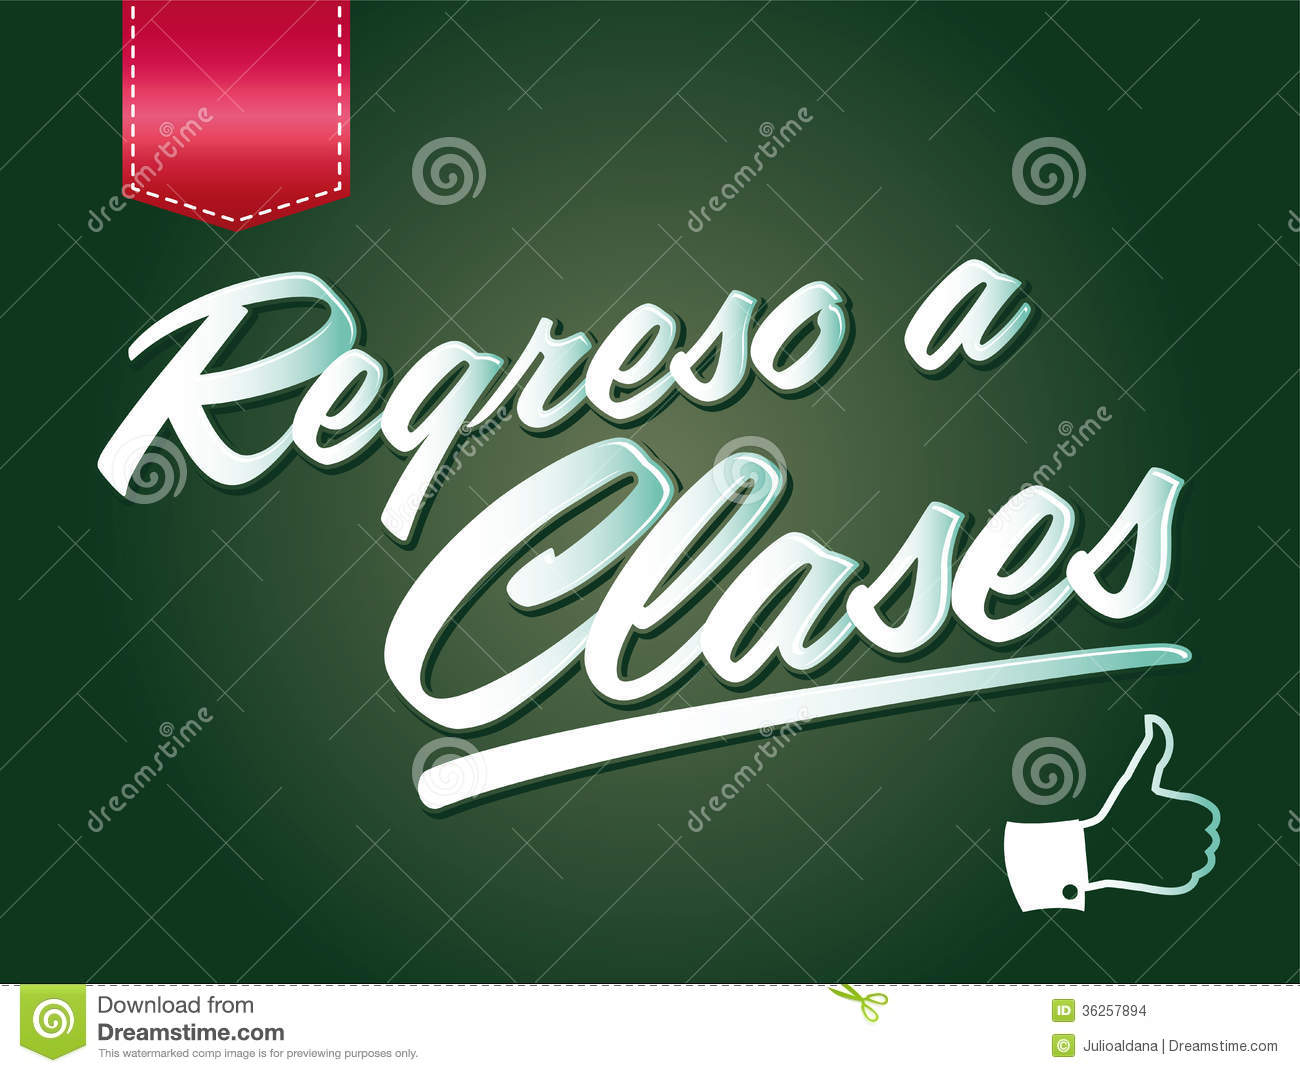 regreso a clases stock images